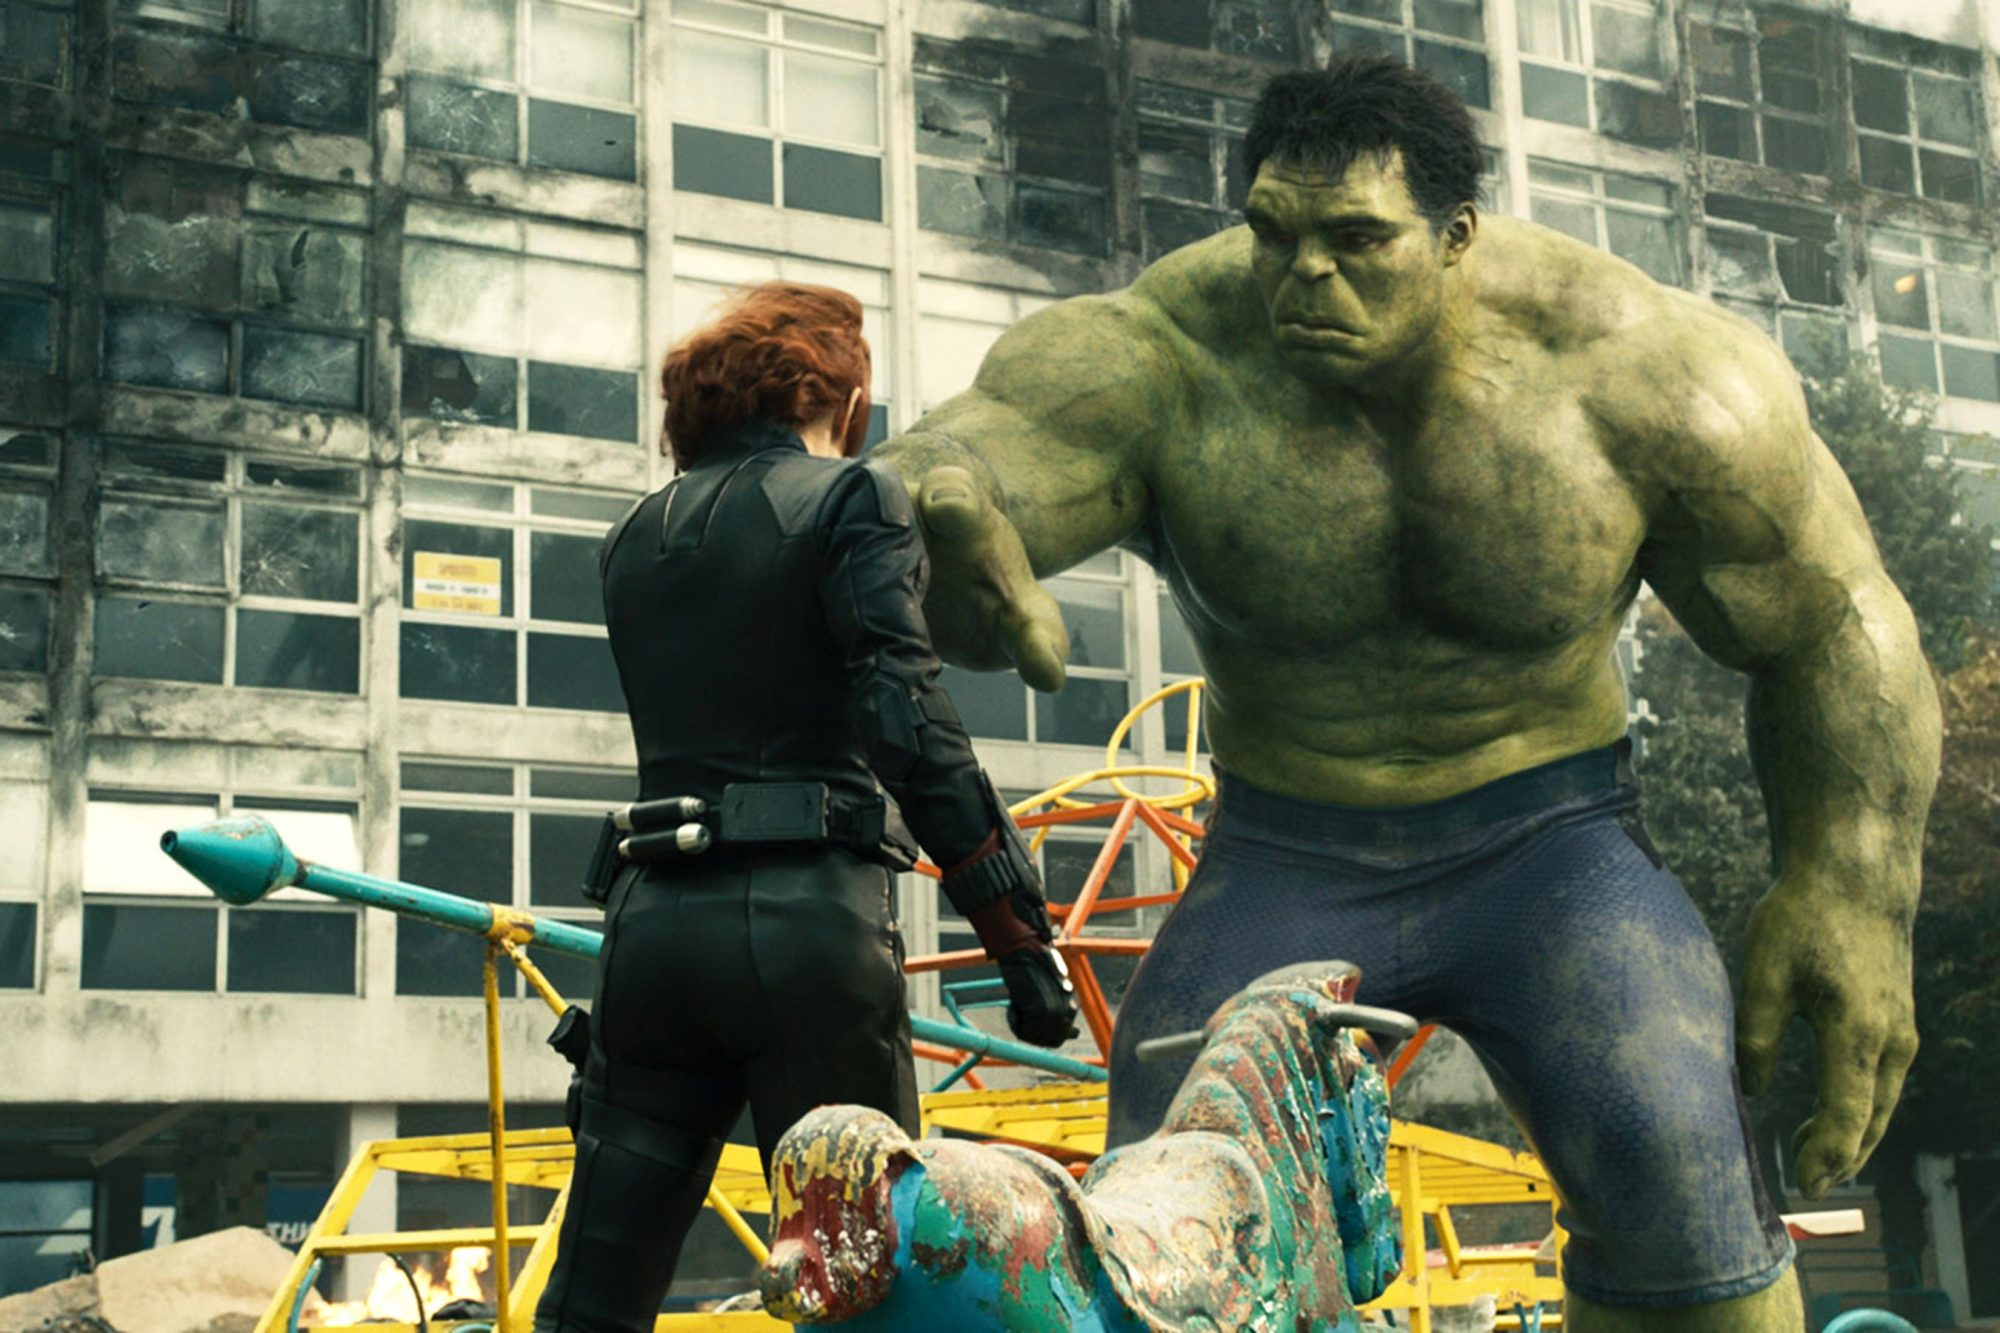 AVENGERS: AGE OF ULTRON, from left: Scarlett Johansson as Black Widow, Mark Ruffalo as Hulk, 2015.